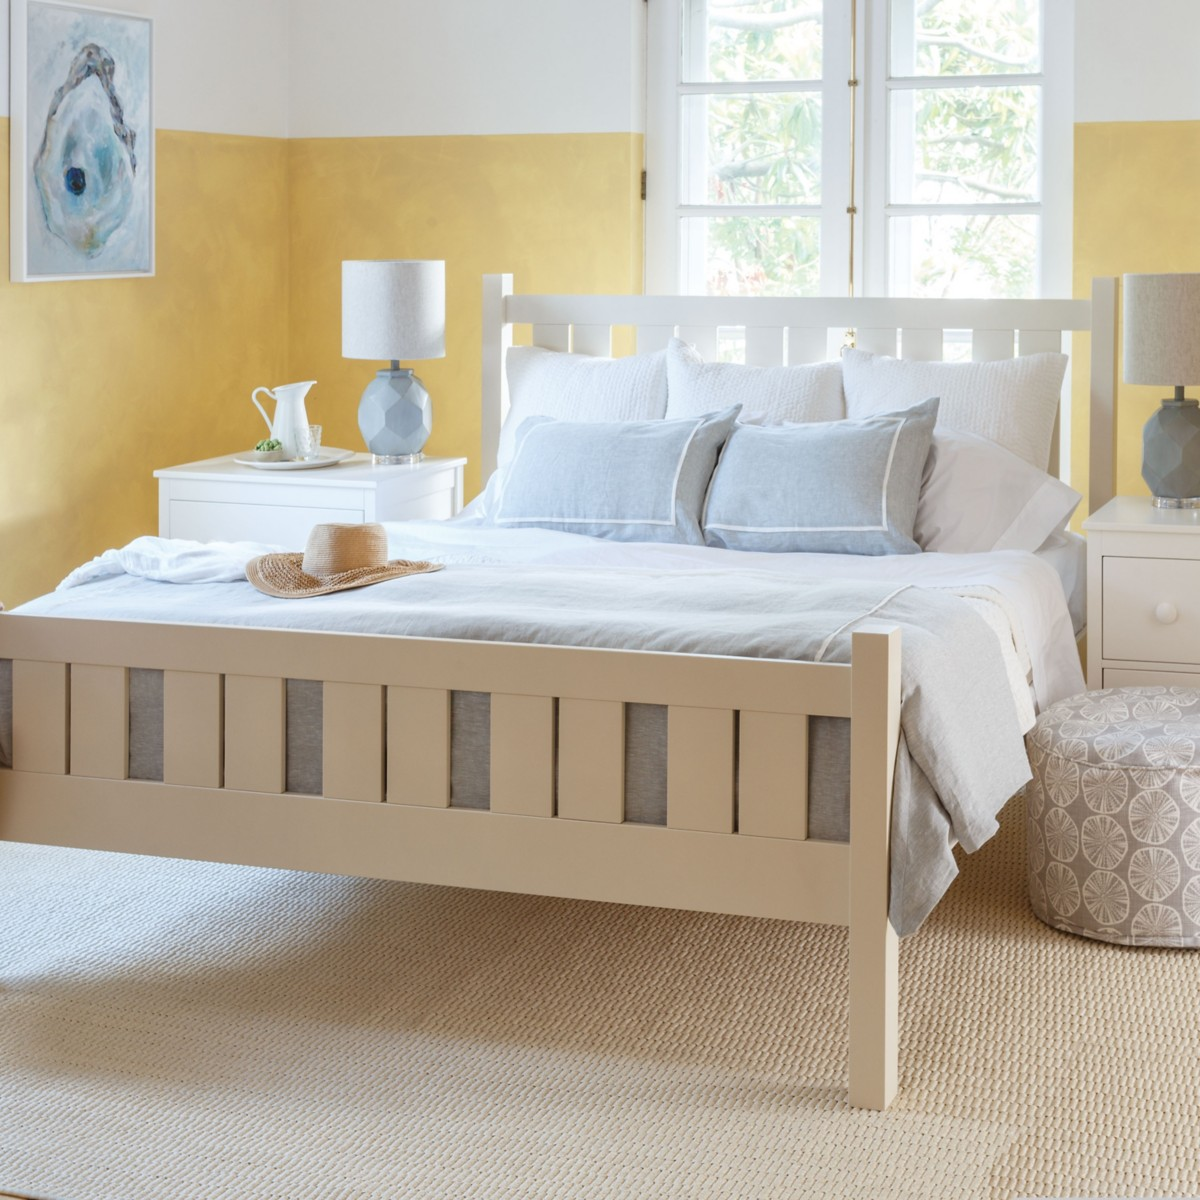 shutter bed - Yellow Bed Frame